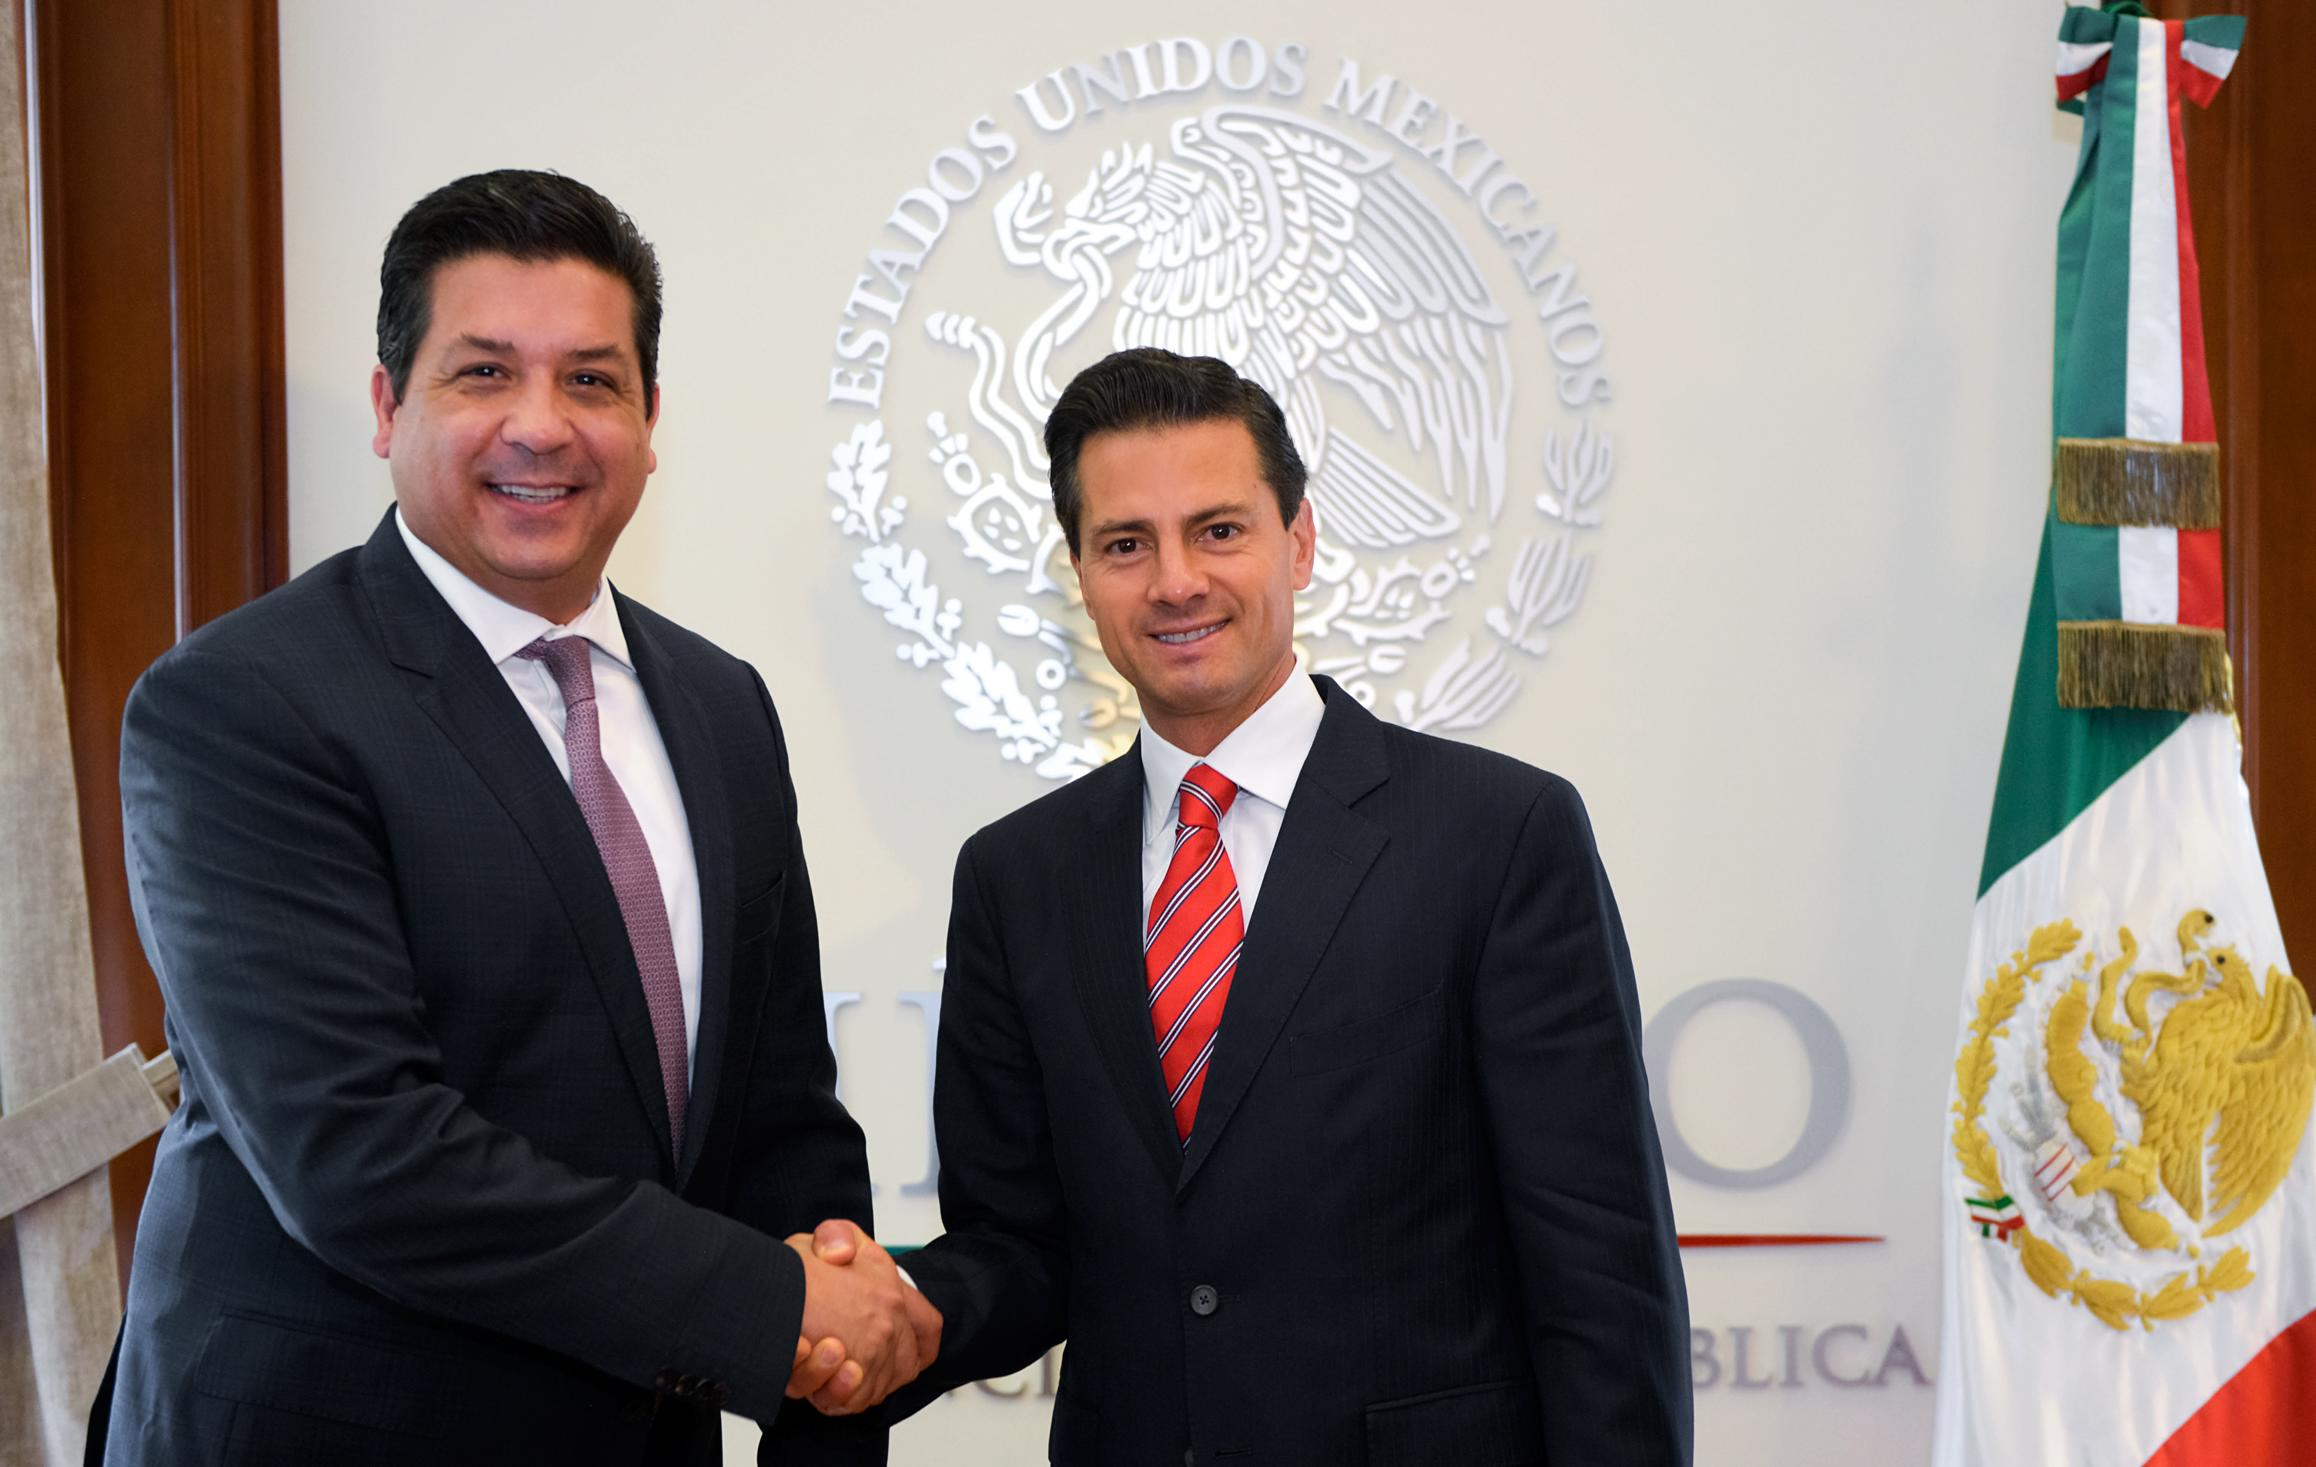 President Enrique Peña Nieto and Governor Elect of Tamaulipas Francisco Javier García Cabeza de Vaca discussed the current situation of the state.